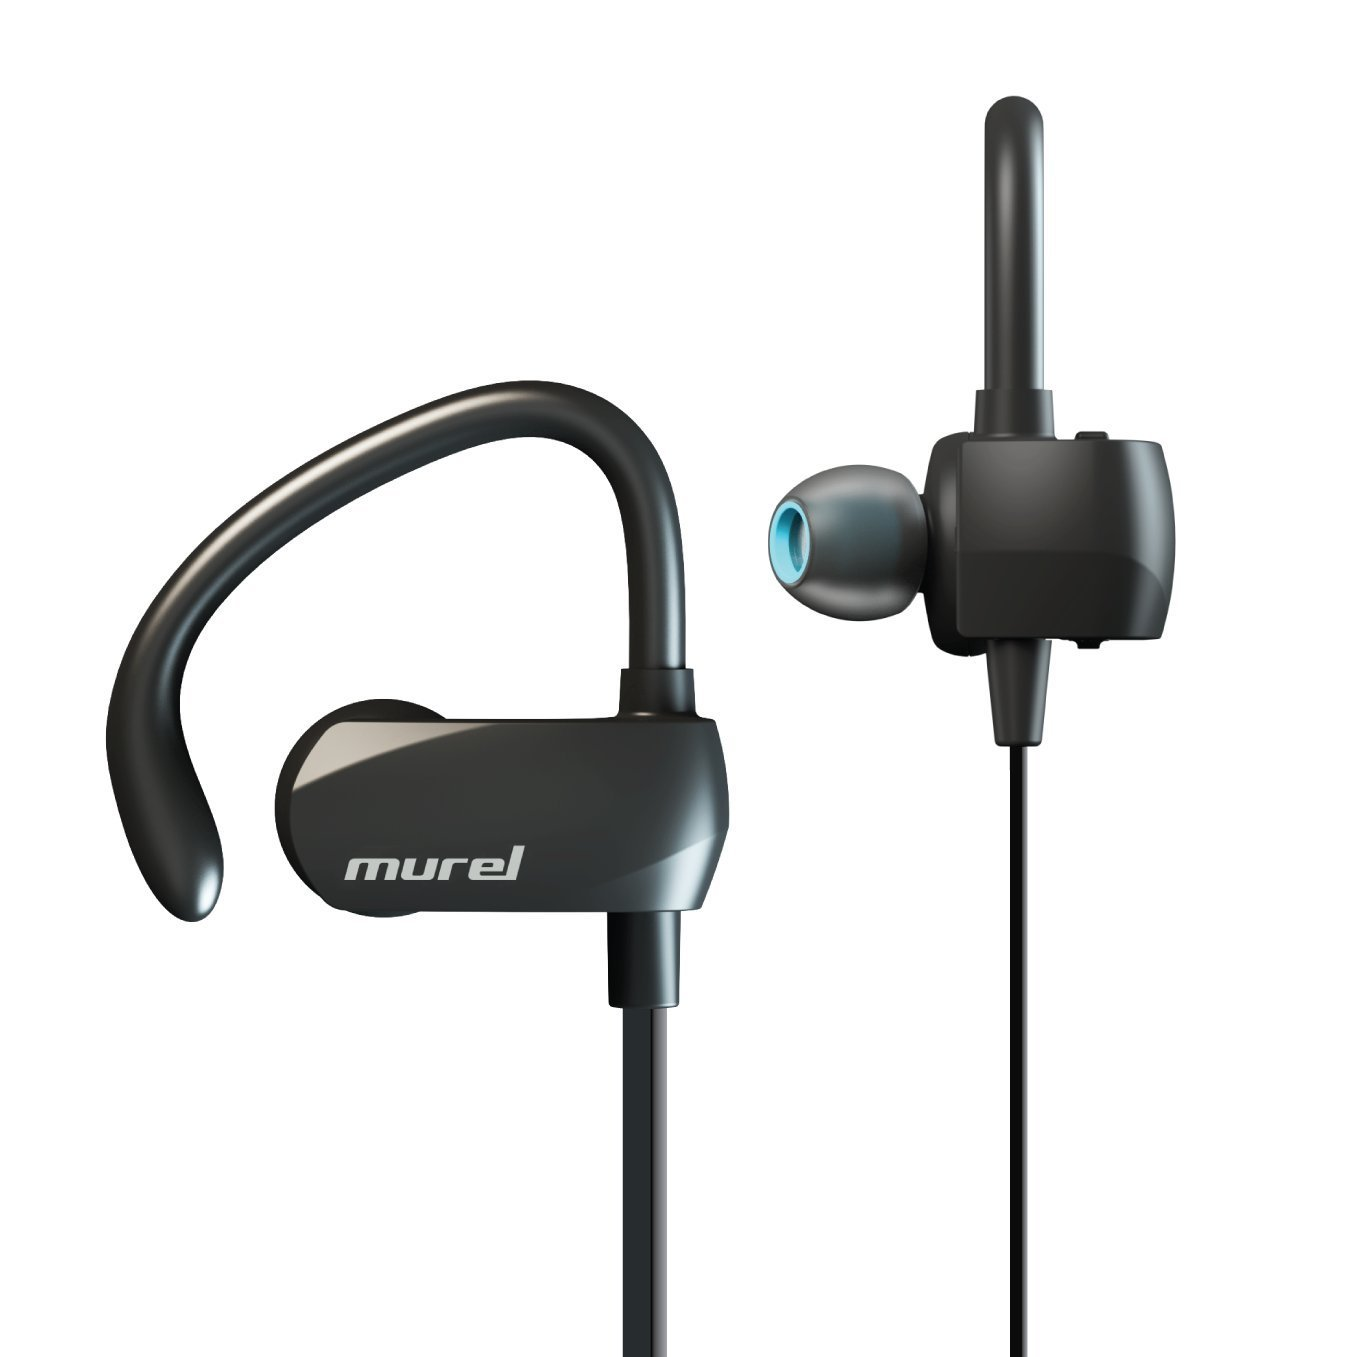 Best Bluetooth Earbuds Wireless Sport 8 Hour Play Time In Ear Exercise Running Sweat Proof Bluetooth 4 1 Secure Ear Hooks Design With Premium Comply Foam Ear Tips P02 By Murel New Walmart Com